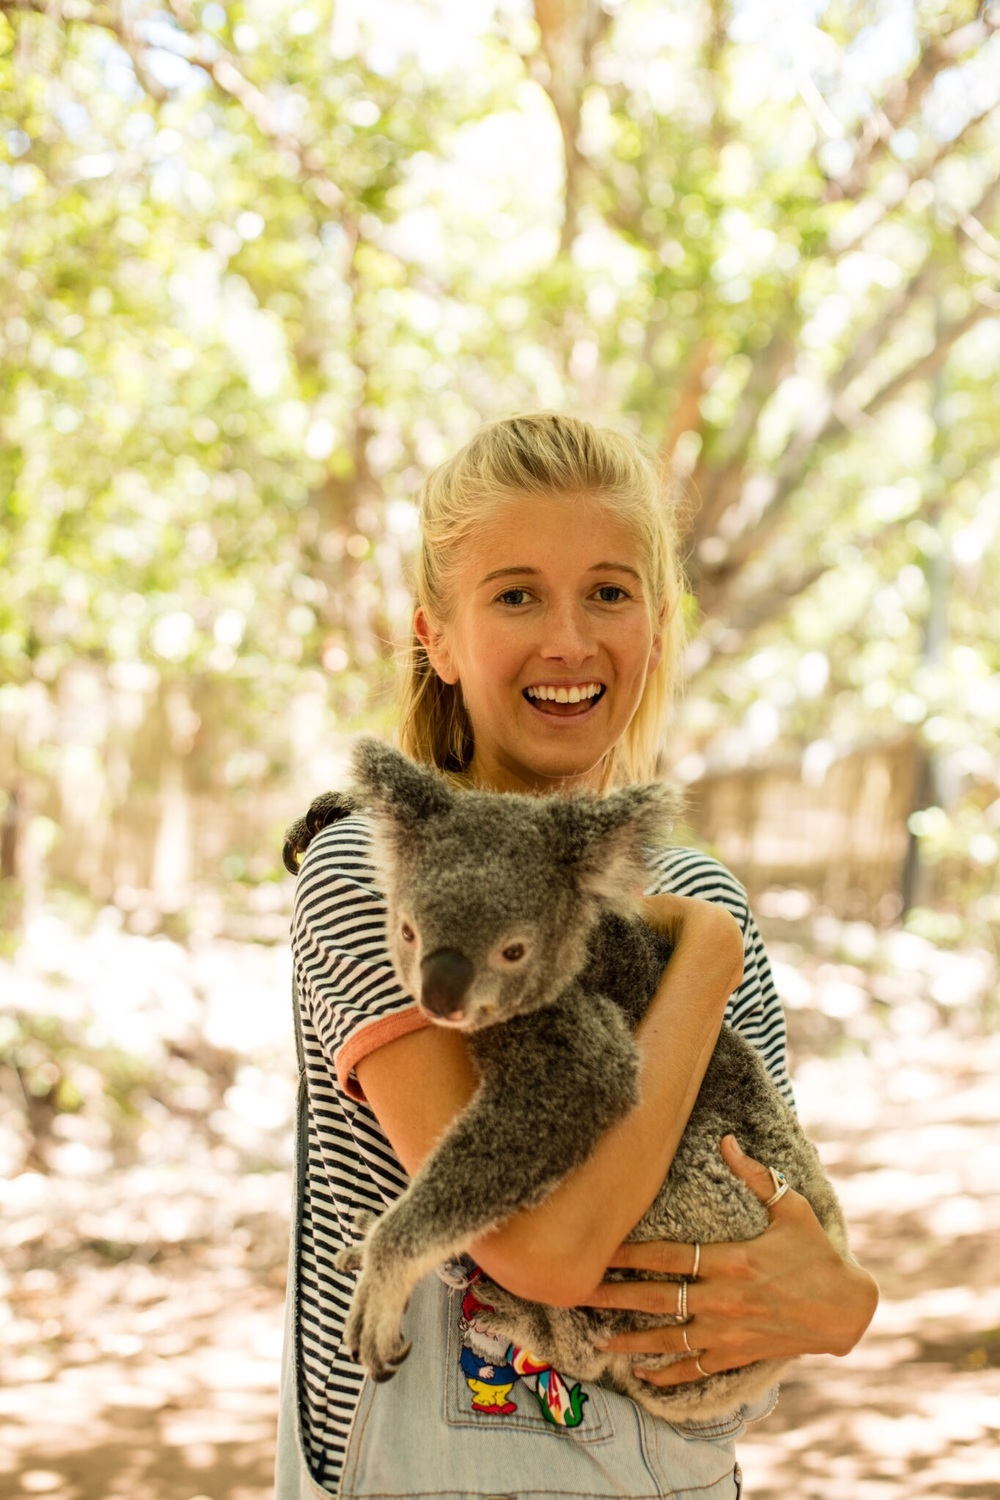 Cuddles with a Koala at Bungalow Bay Backpackers Koala Sanctuary